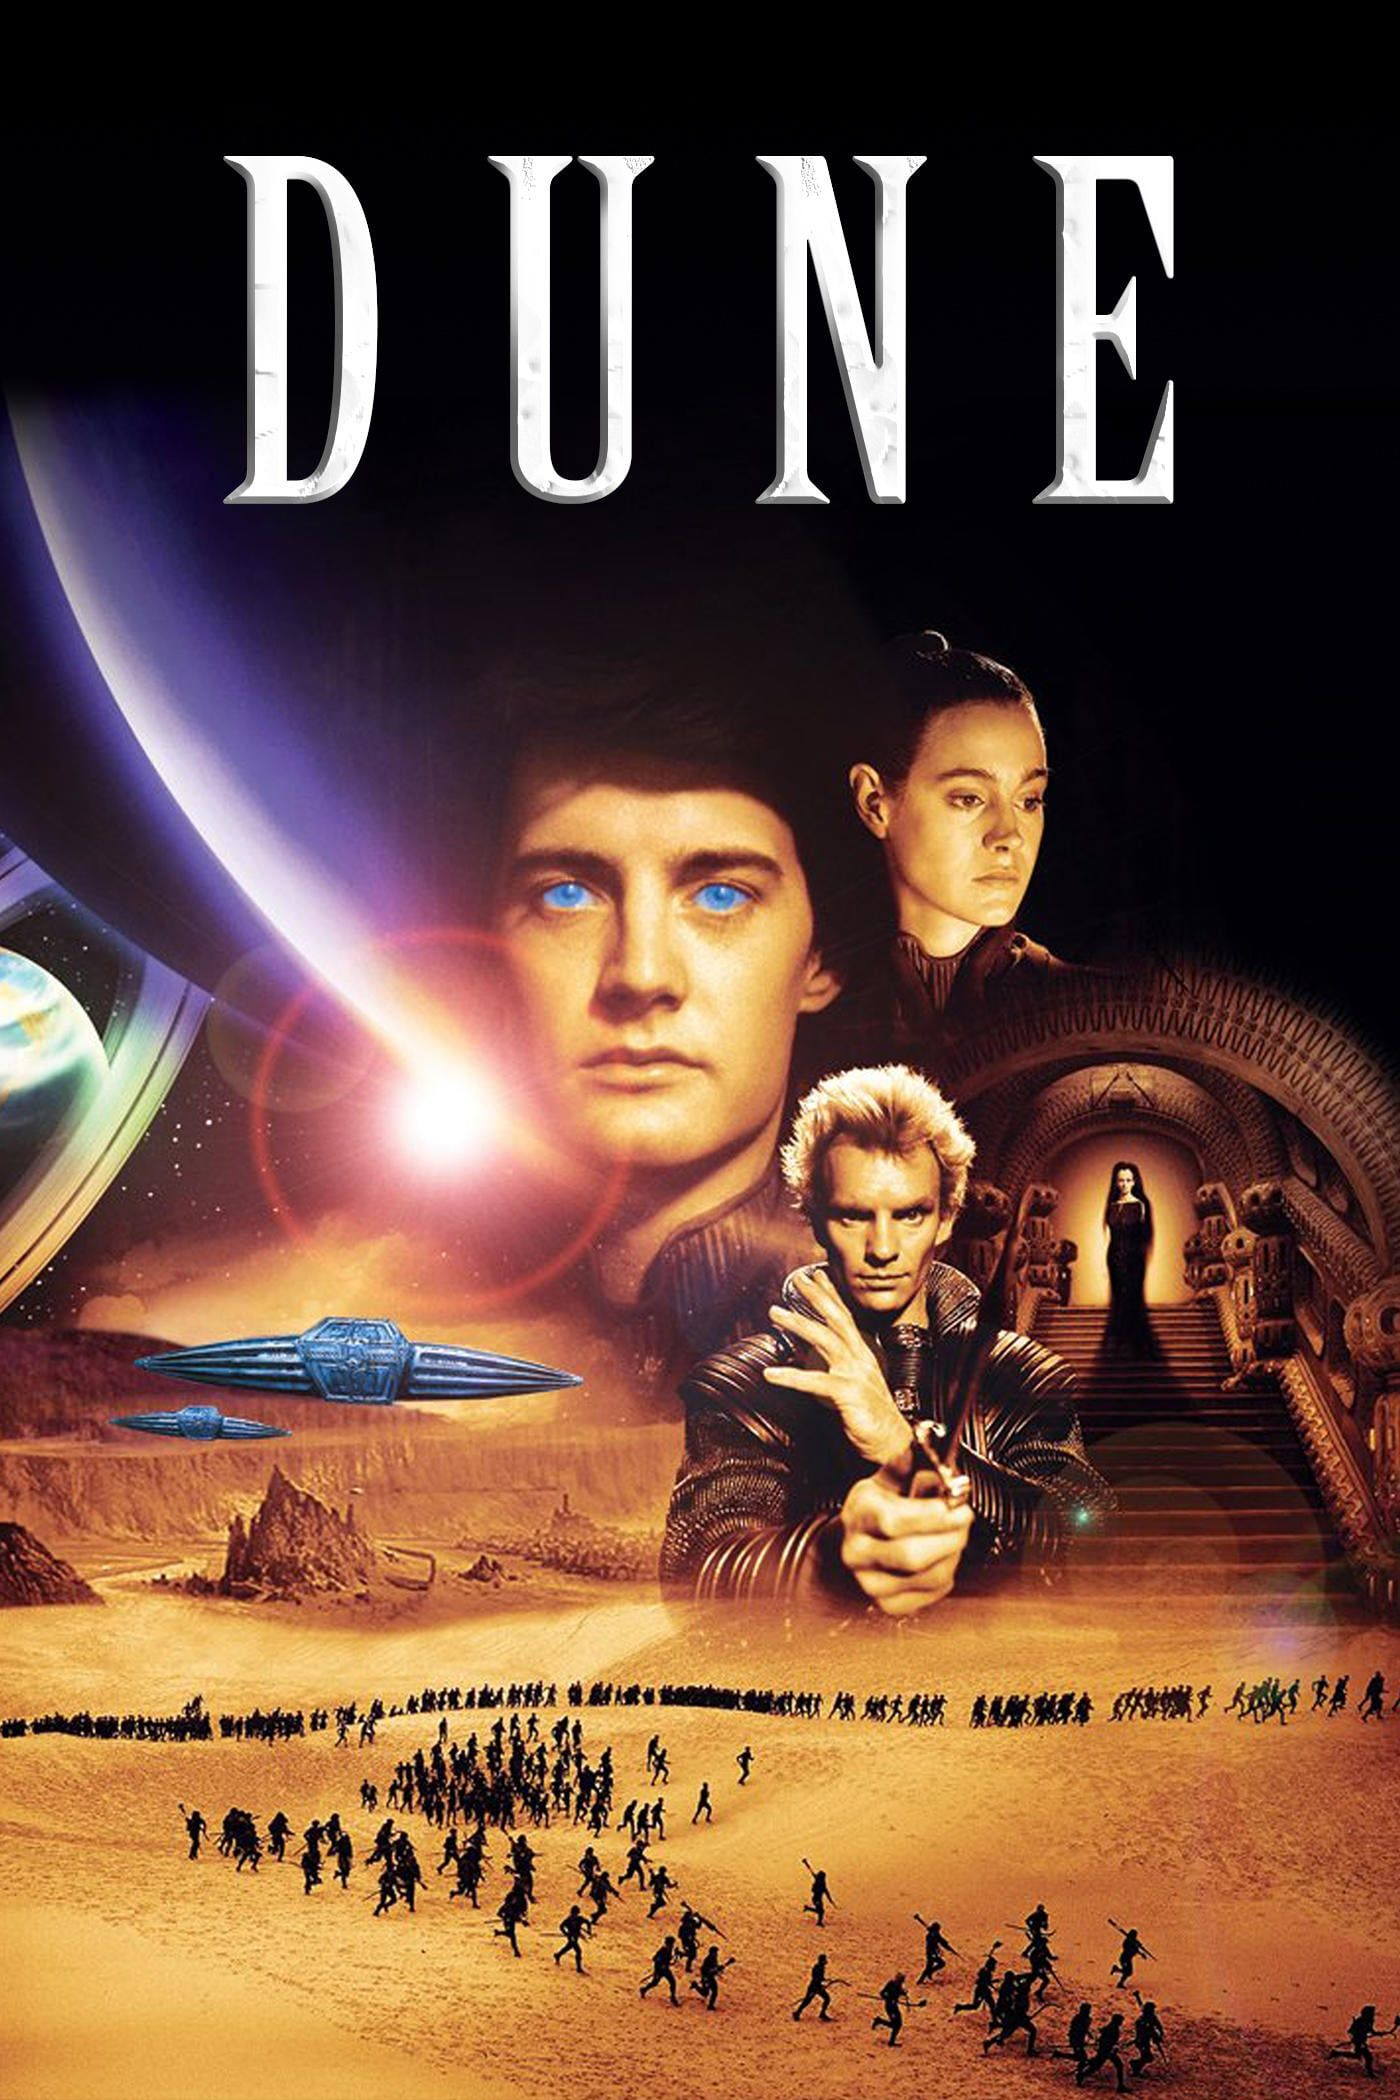 Dune movie poster - #poster, #bestposter, #fullhd, #fullmovie, #hdvix,  #movie720pIn the year 10,191, the world is at war for control of the desert  planet ...